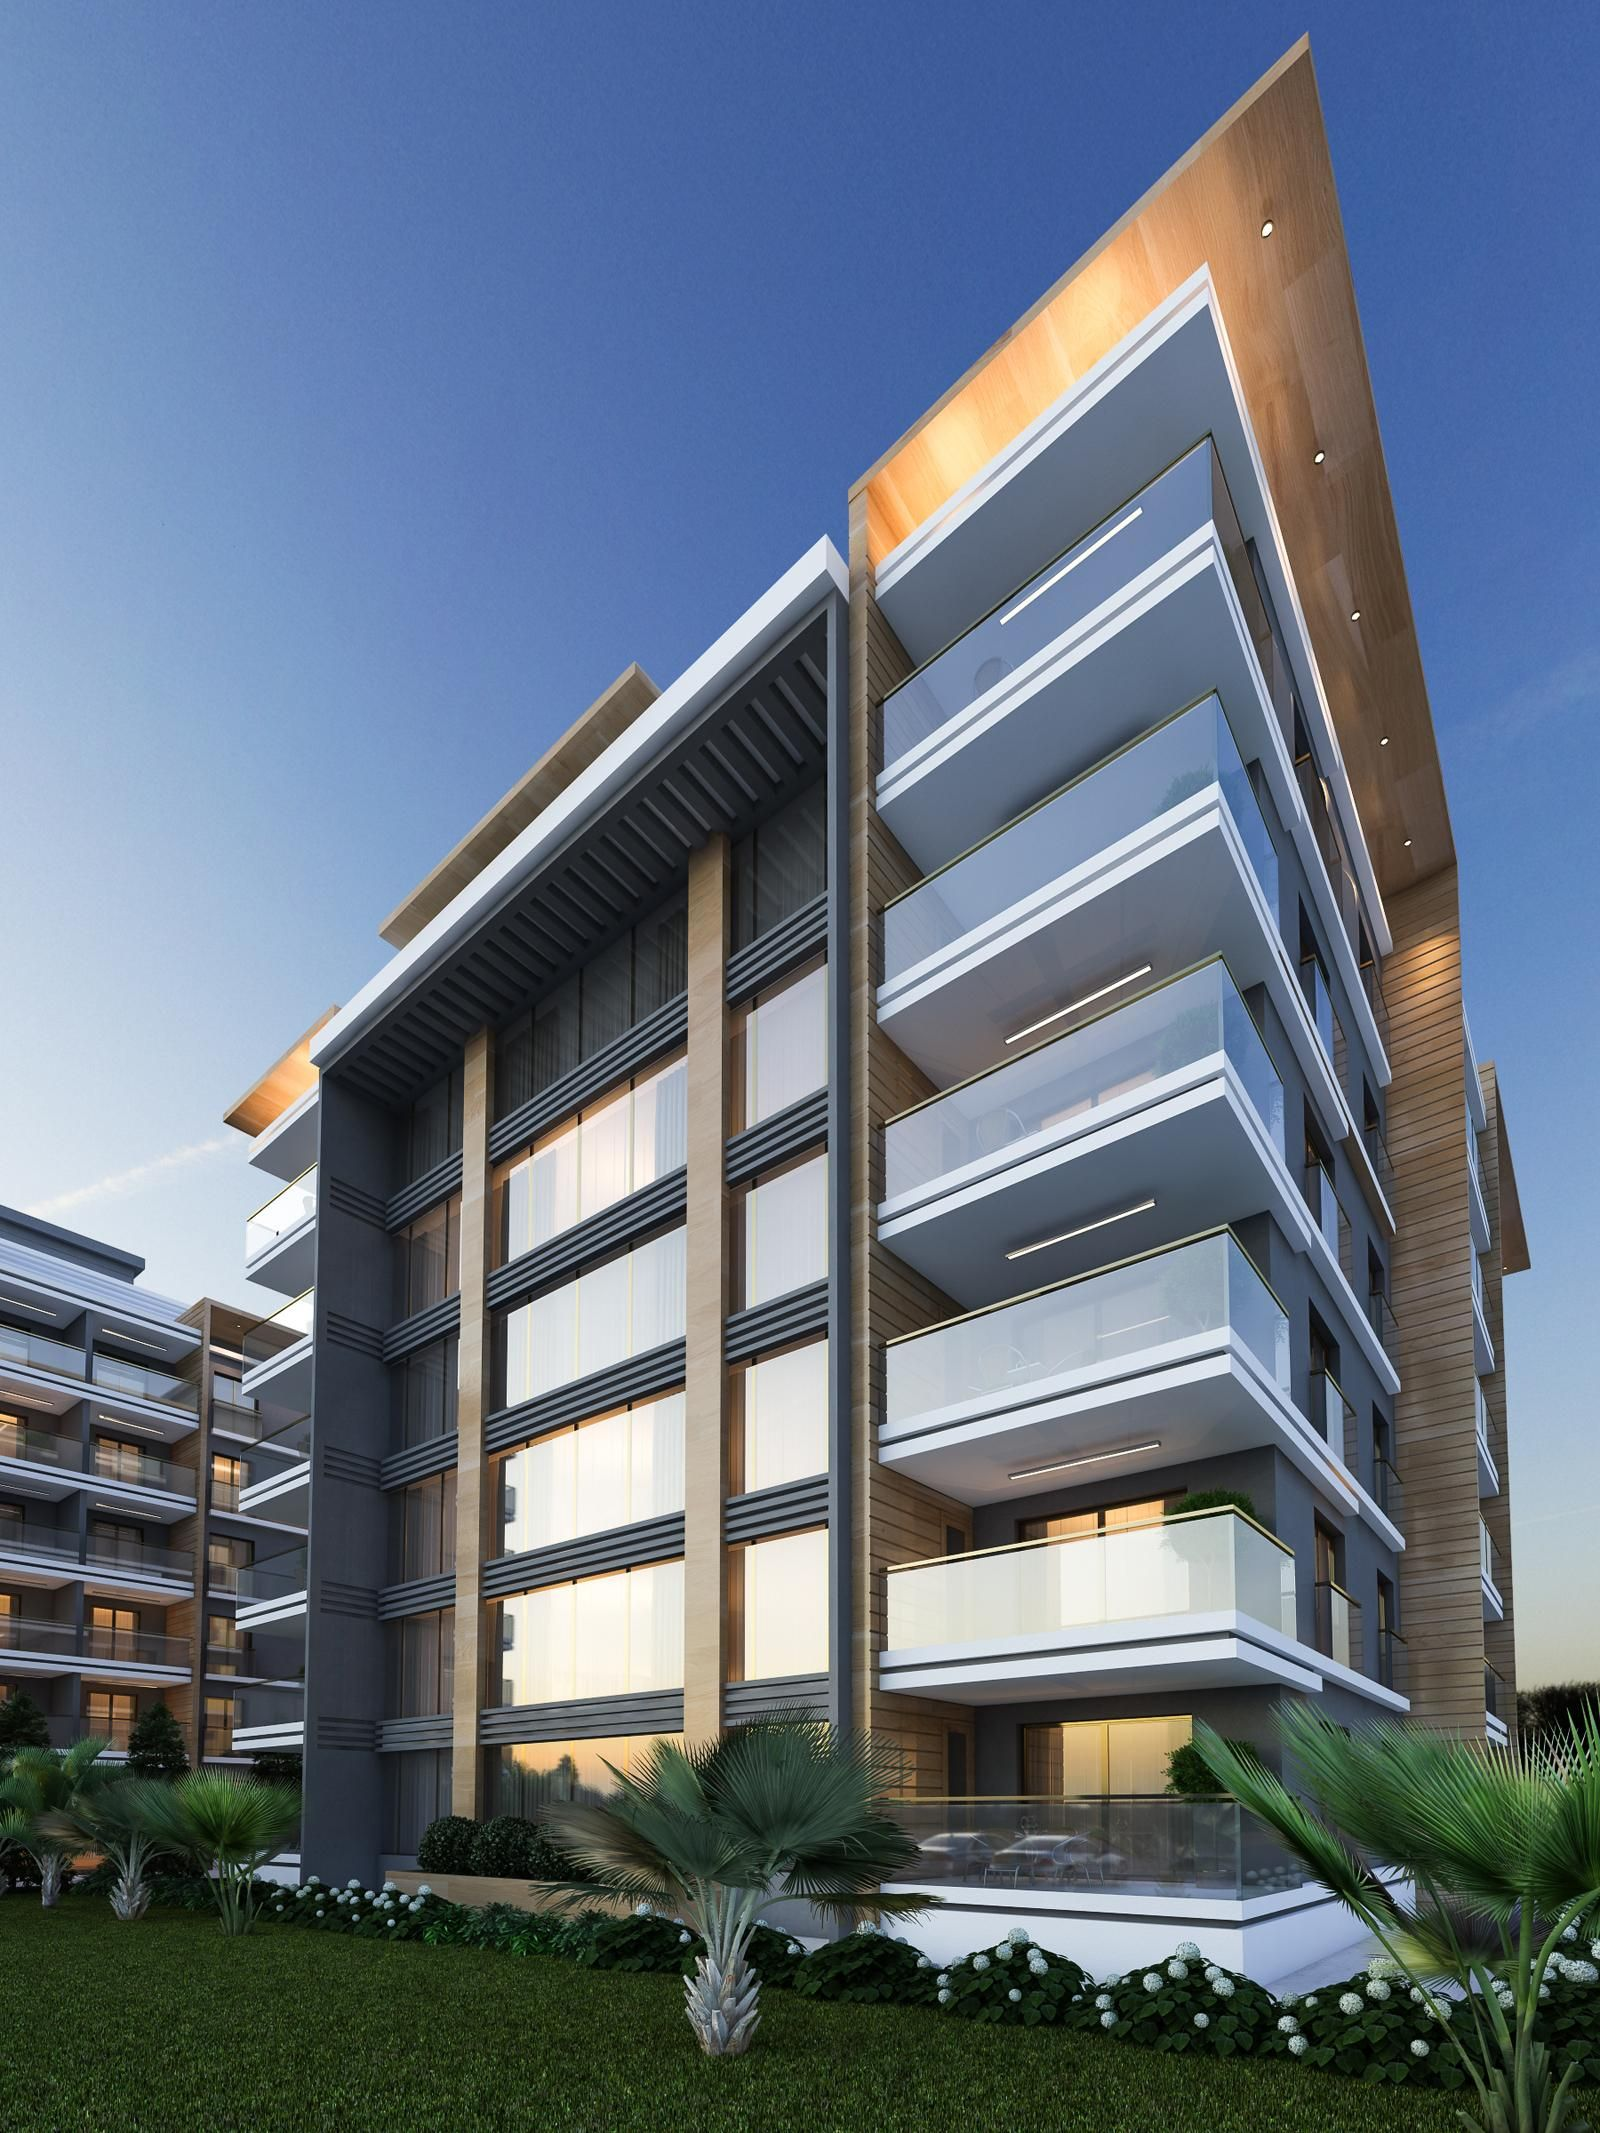 Architectural Design Of Residential Building Toprak Evlerİ Resi Modern Architecture Architecture